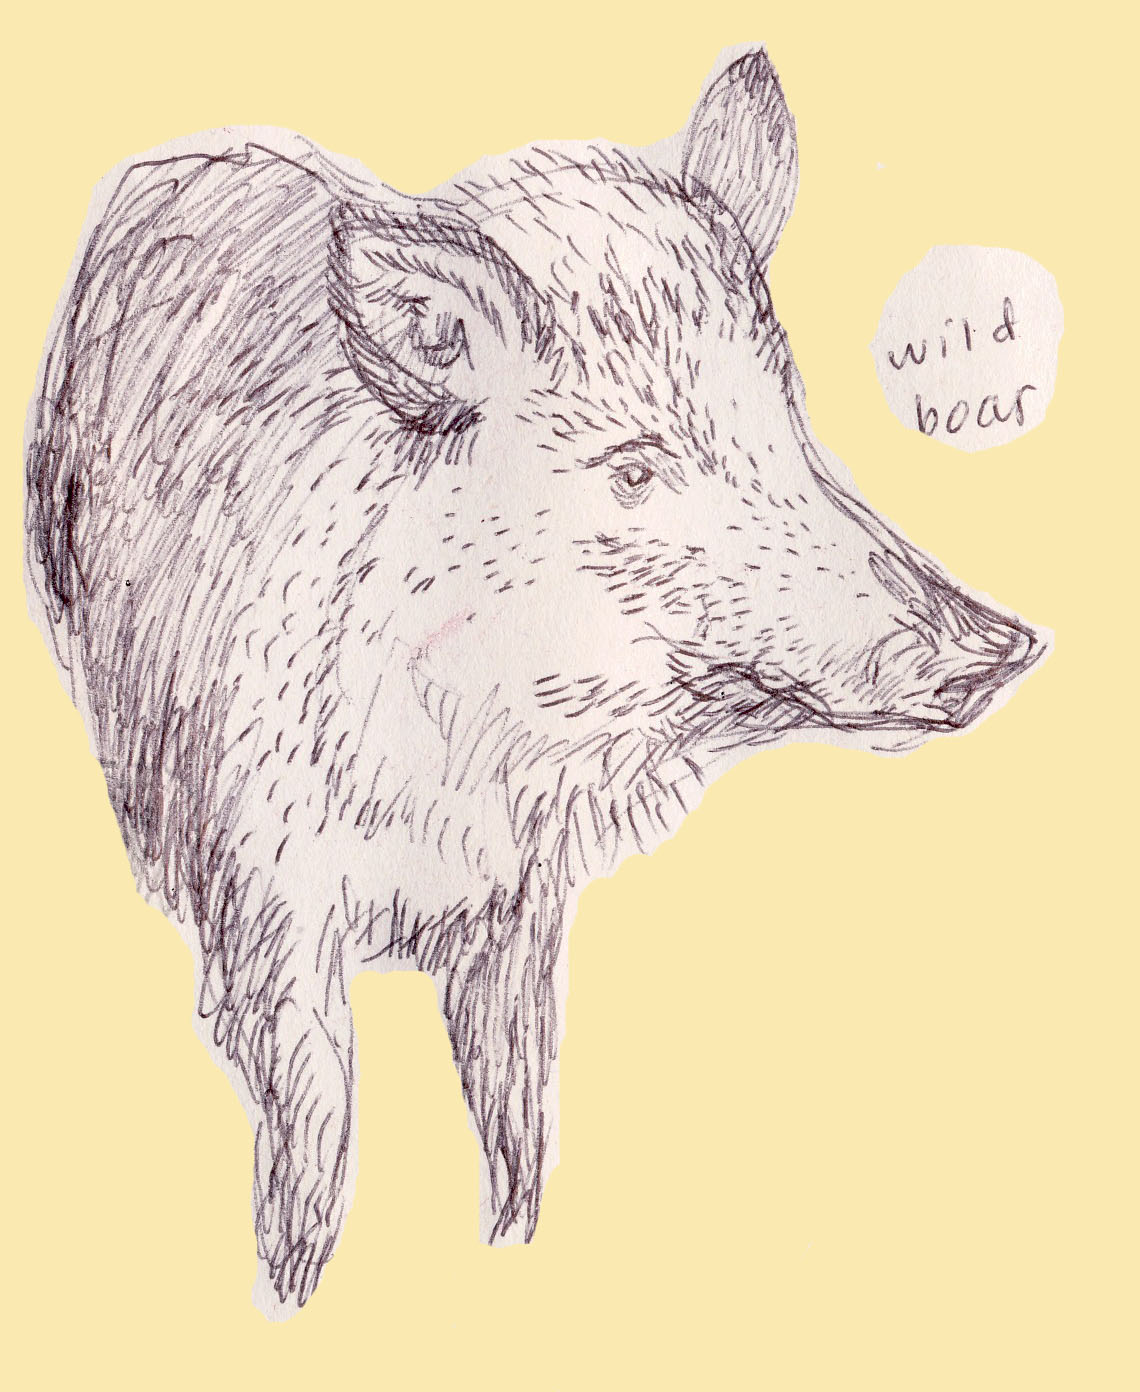 Wild Boar Sketch SketchesWild Boar Sketch